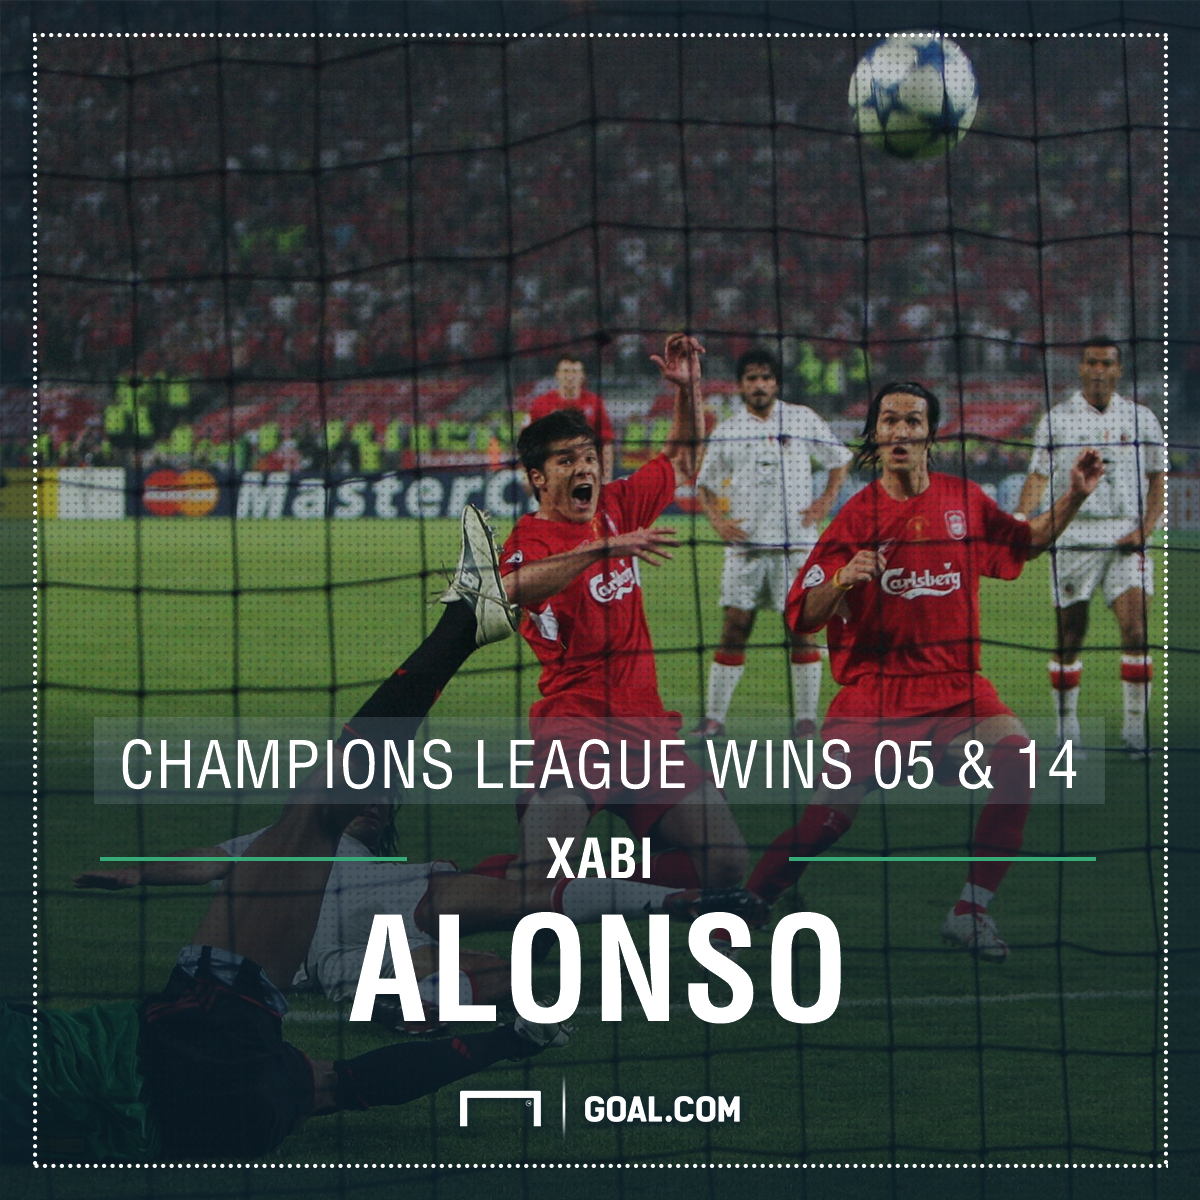 Xabi Alonso Champions League